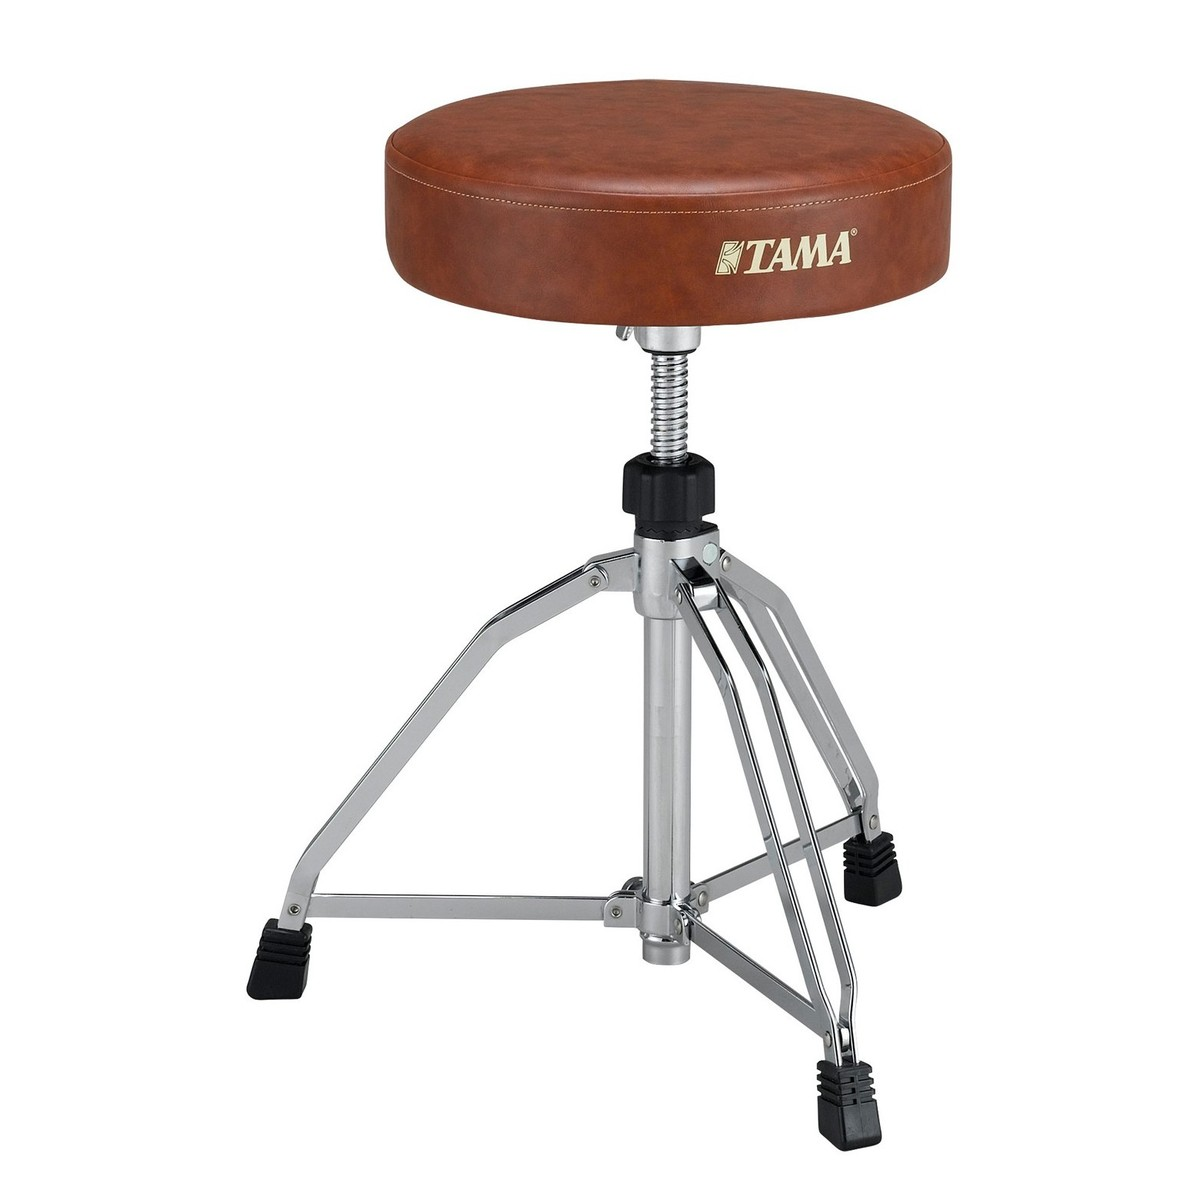 Tama HT65WNBR Roadpro Drum Throne with Vintage Brown Seat  sc 1 st  Gear4music & Tama HT65WNBR Roadpro Drum Throne with Vintage Brown Seat at ... islam-shia.org